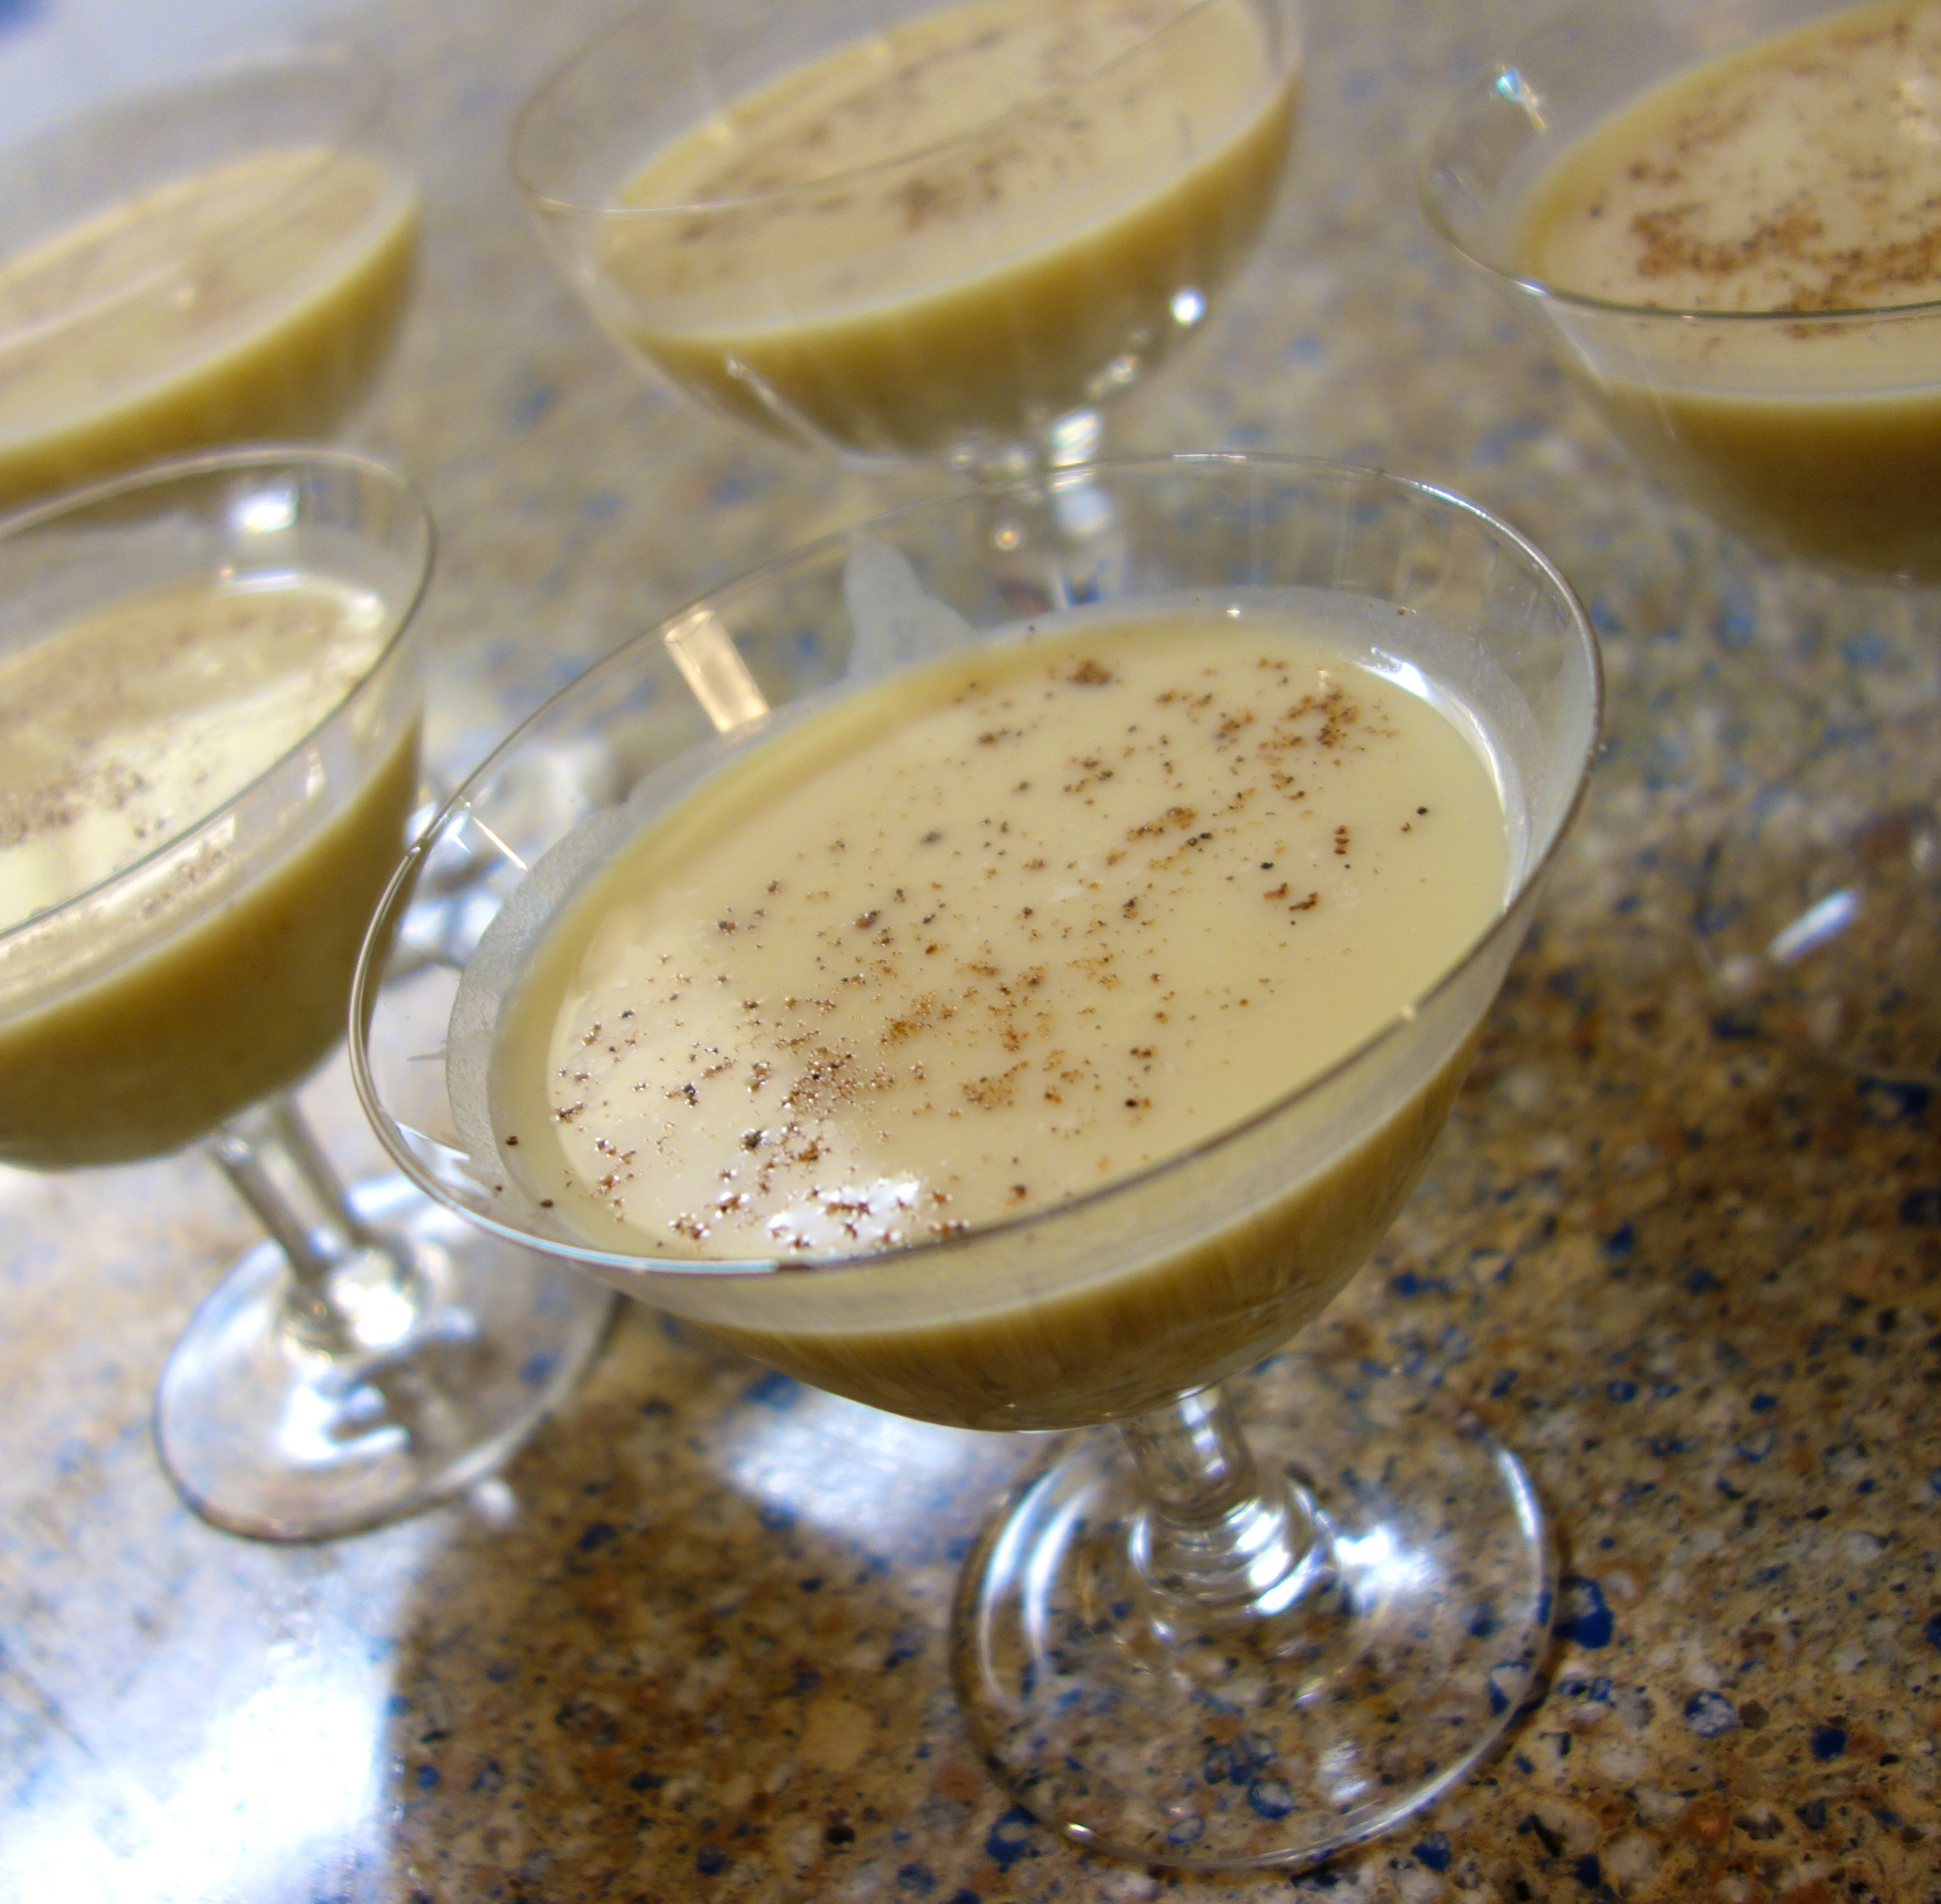 eggnog martini was delicious and it was fun to make our own eggnog ...